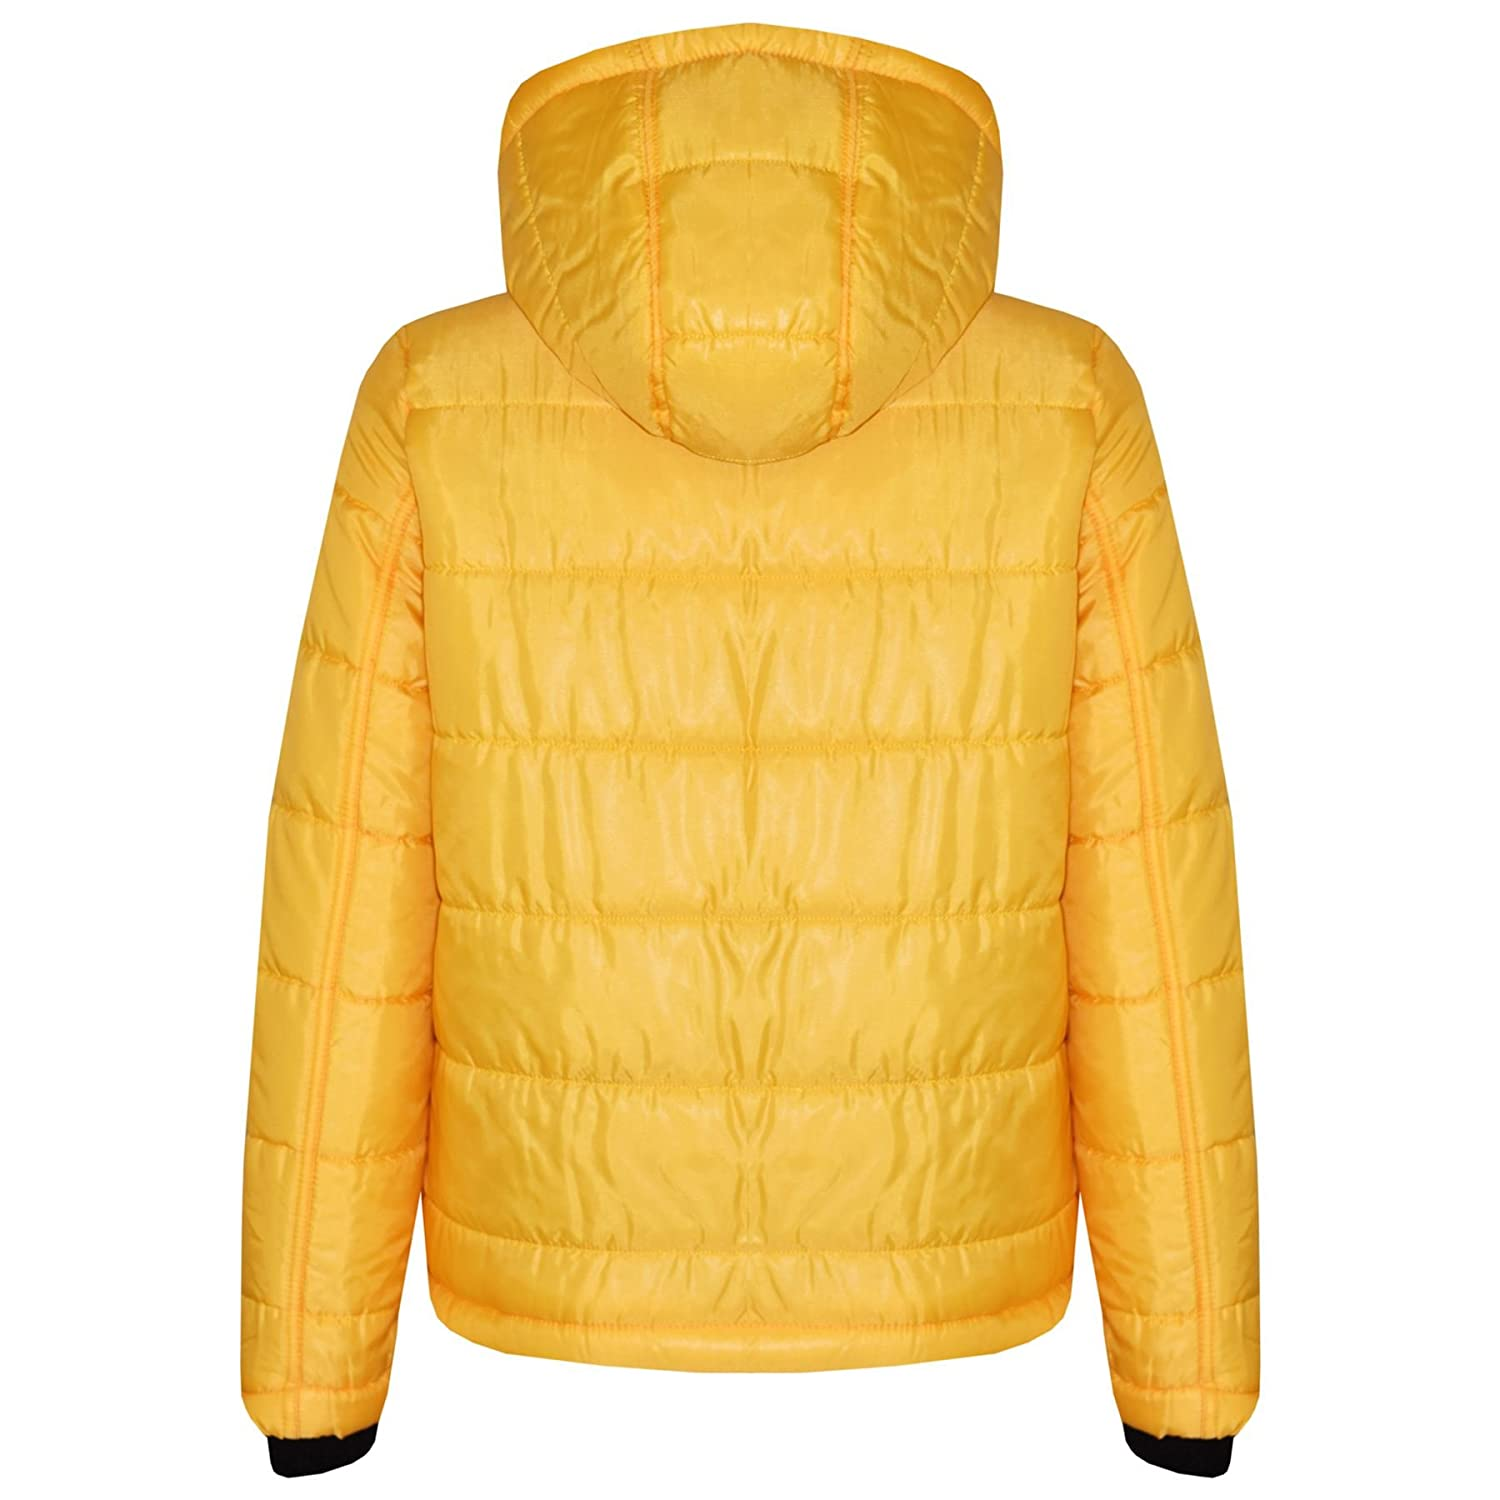 A2Z 4 Kids/® Girls Jacket Kids Bella High Shine Mustard Hooded Padded Quilted Puffer Jackets